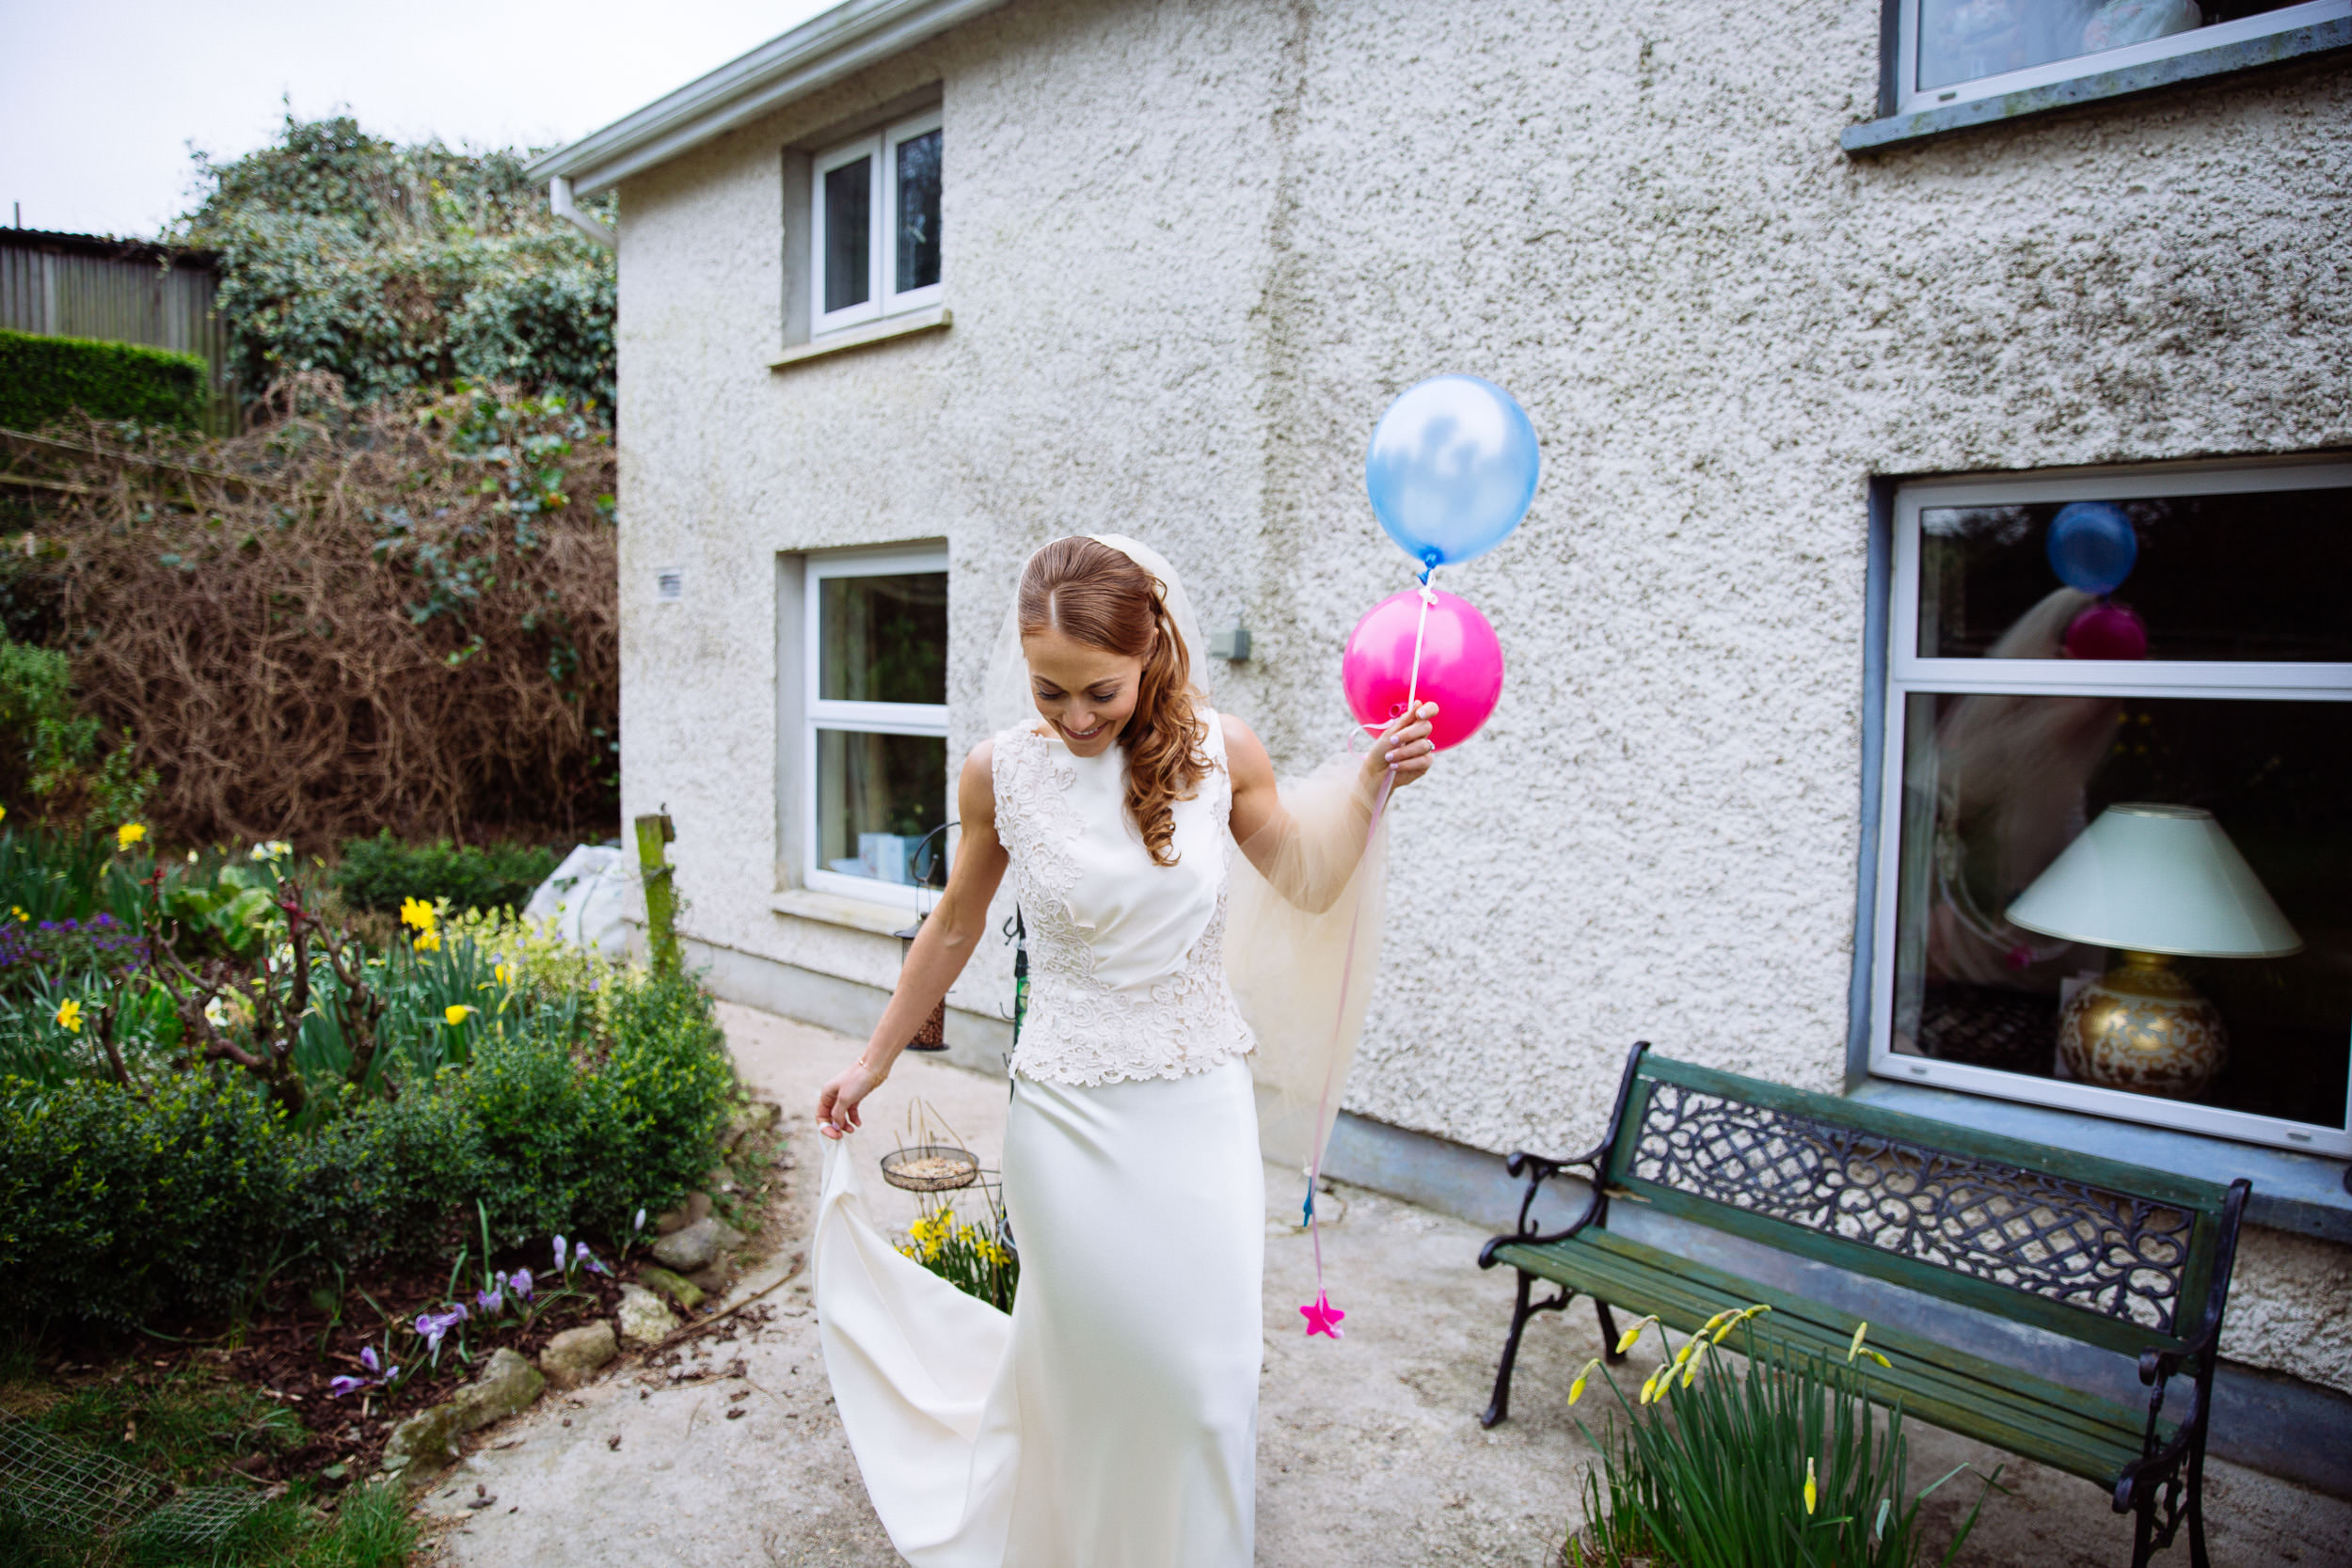 clairebyrnephotography-fun-wedding-photographer-ireland-creative-113.jpg